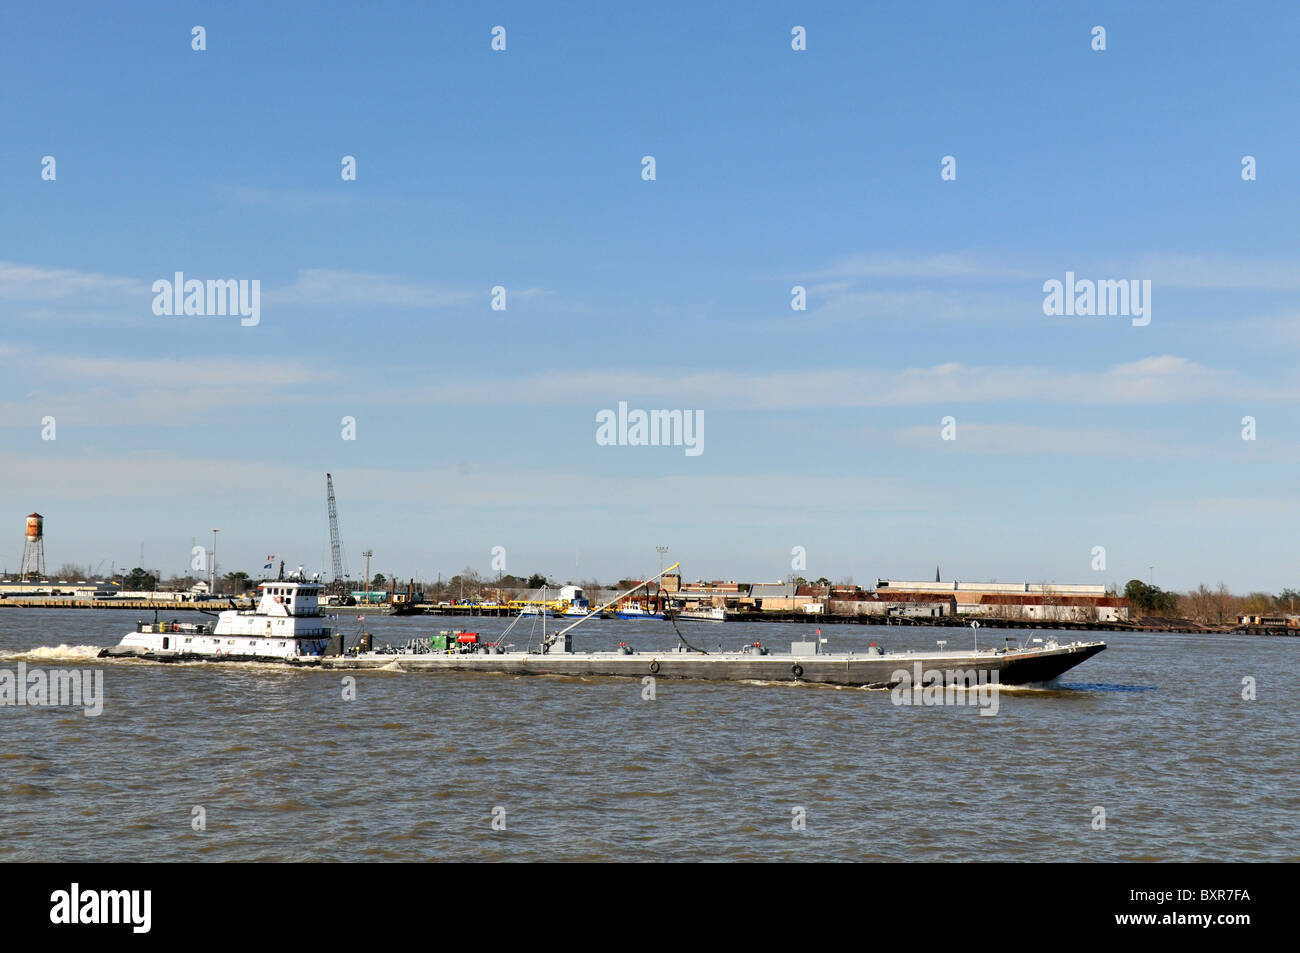 tug pushing barge mississippi river new orleans louisiana stock photo 33702238 alamy. Black Bedroom Furniture Sets. Home Design Ideas